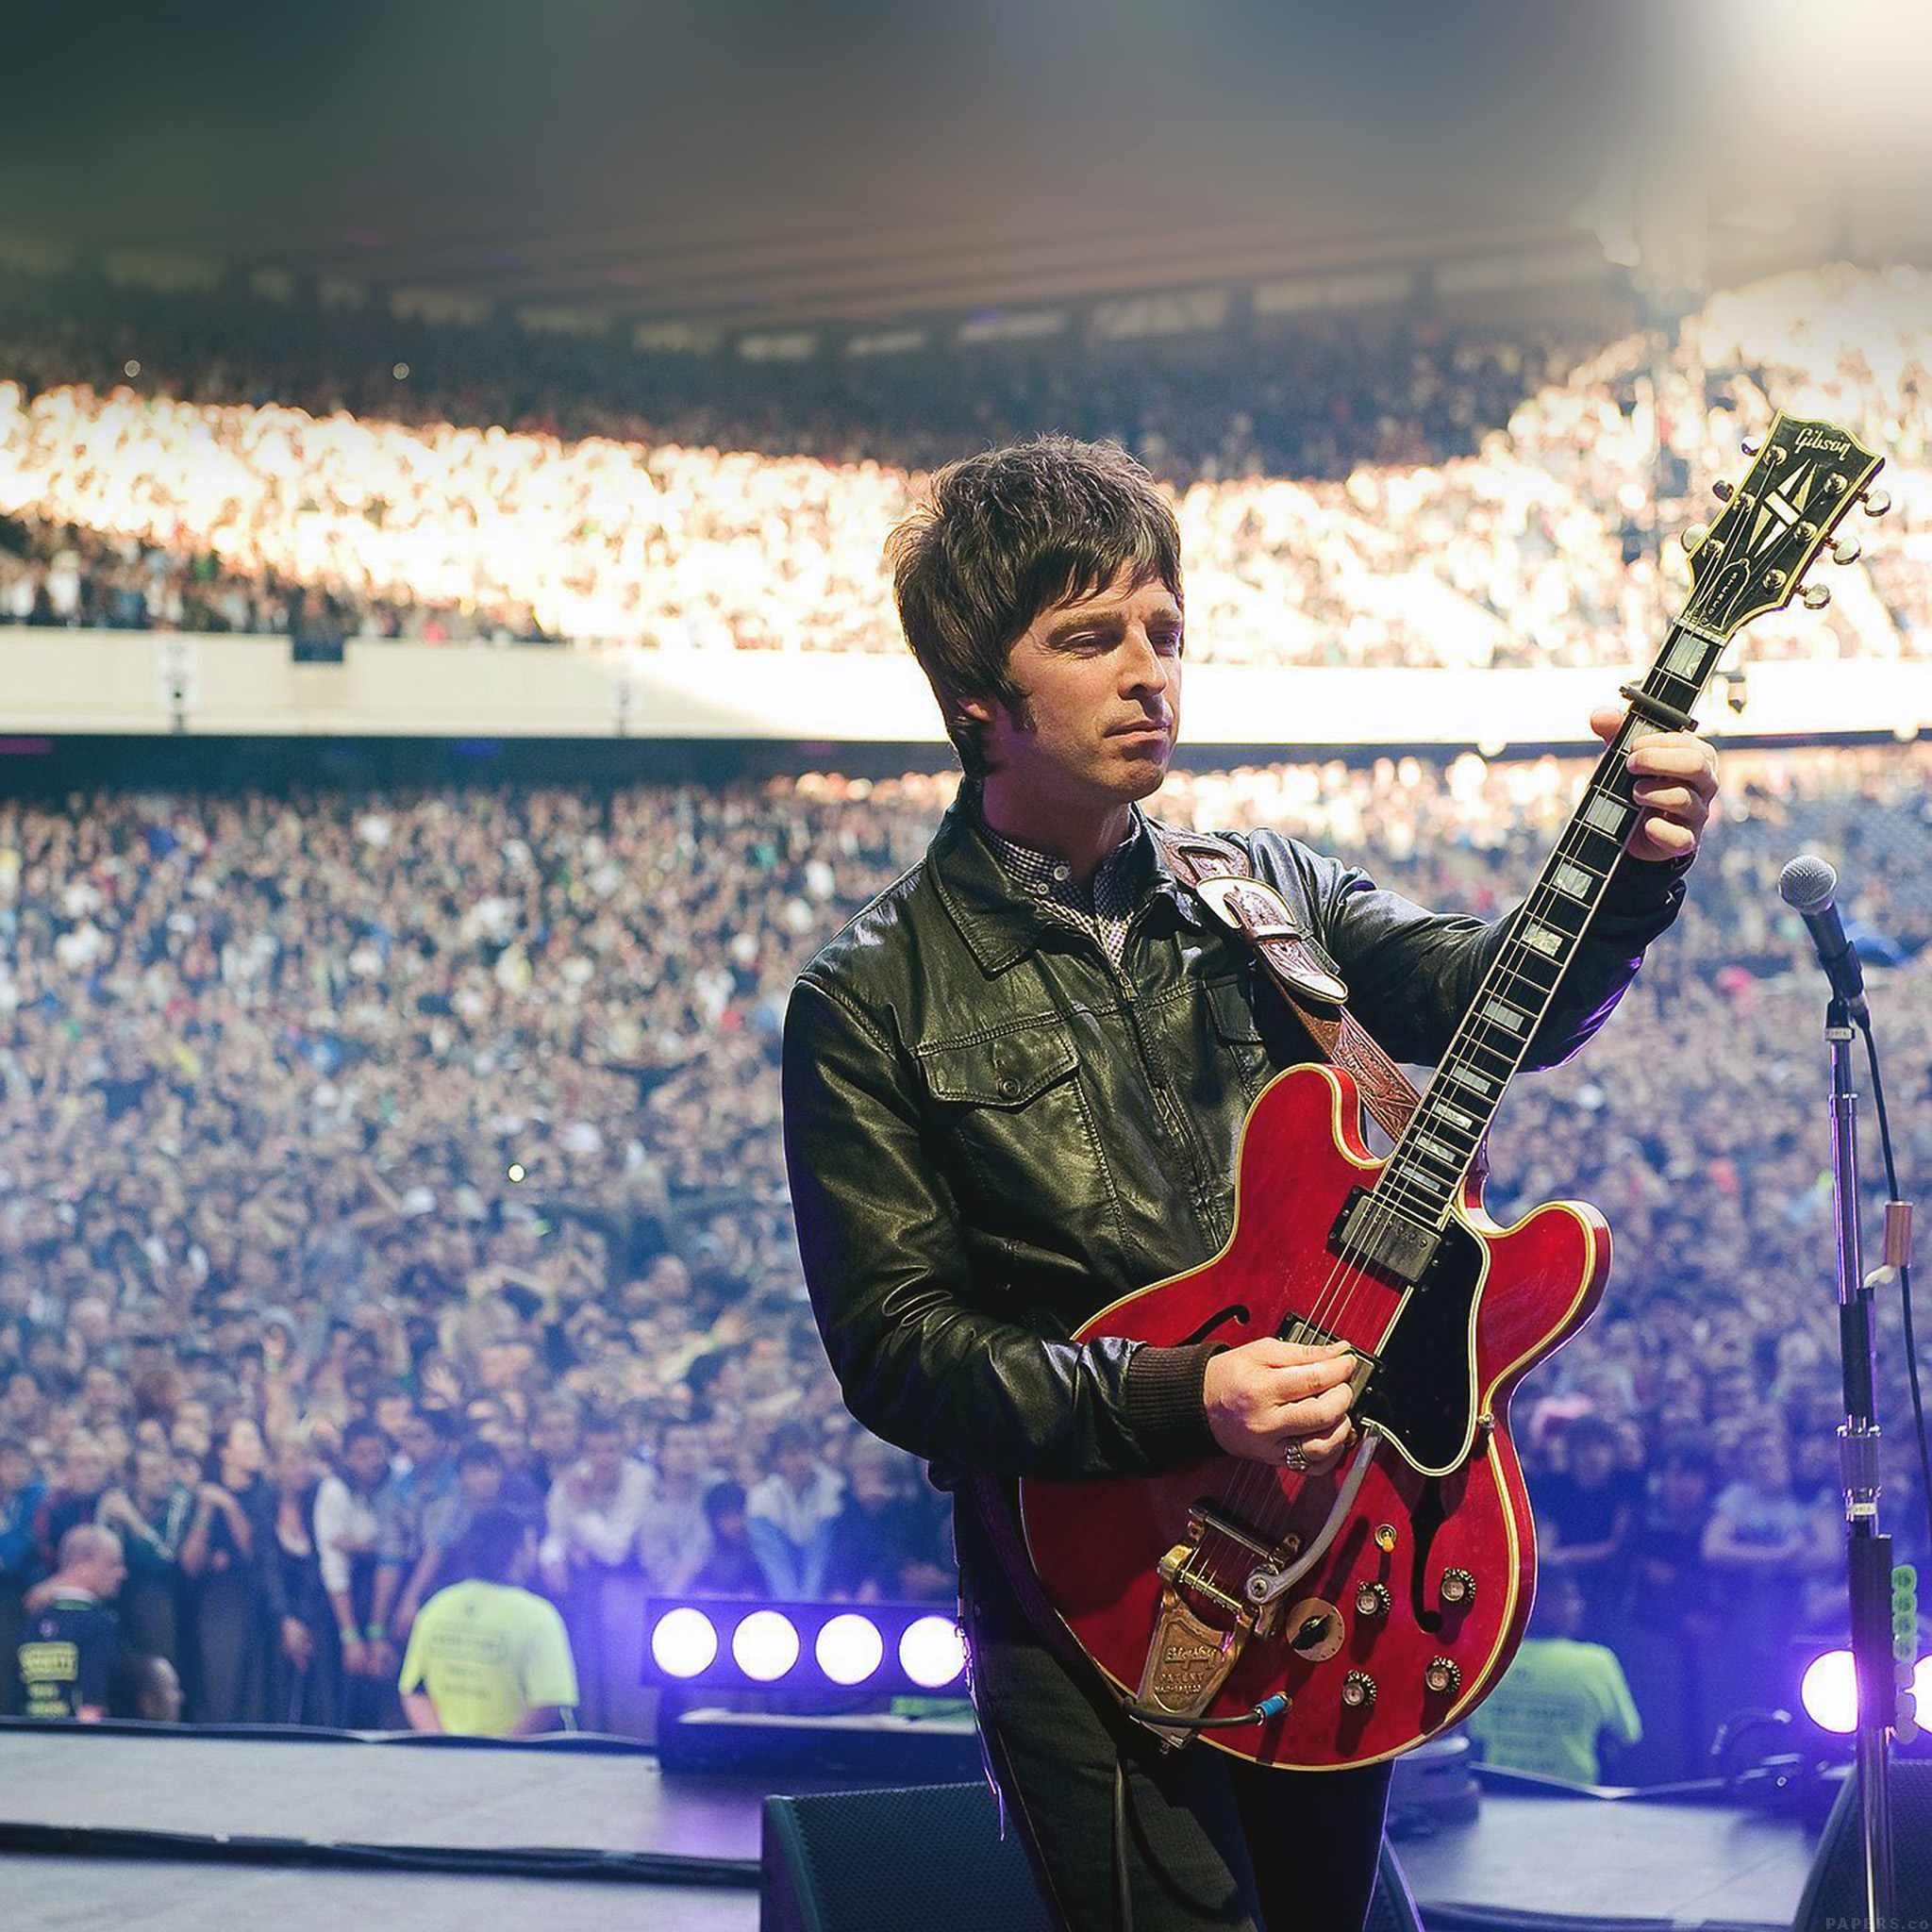 hd93-noel-oasis-music-band-celebrity